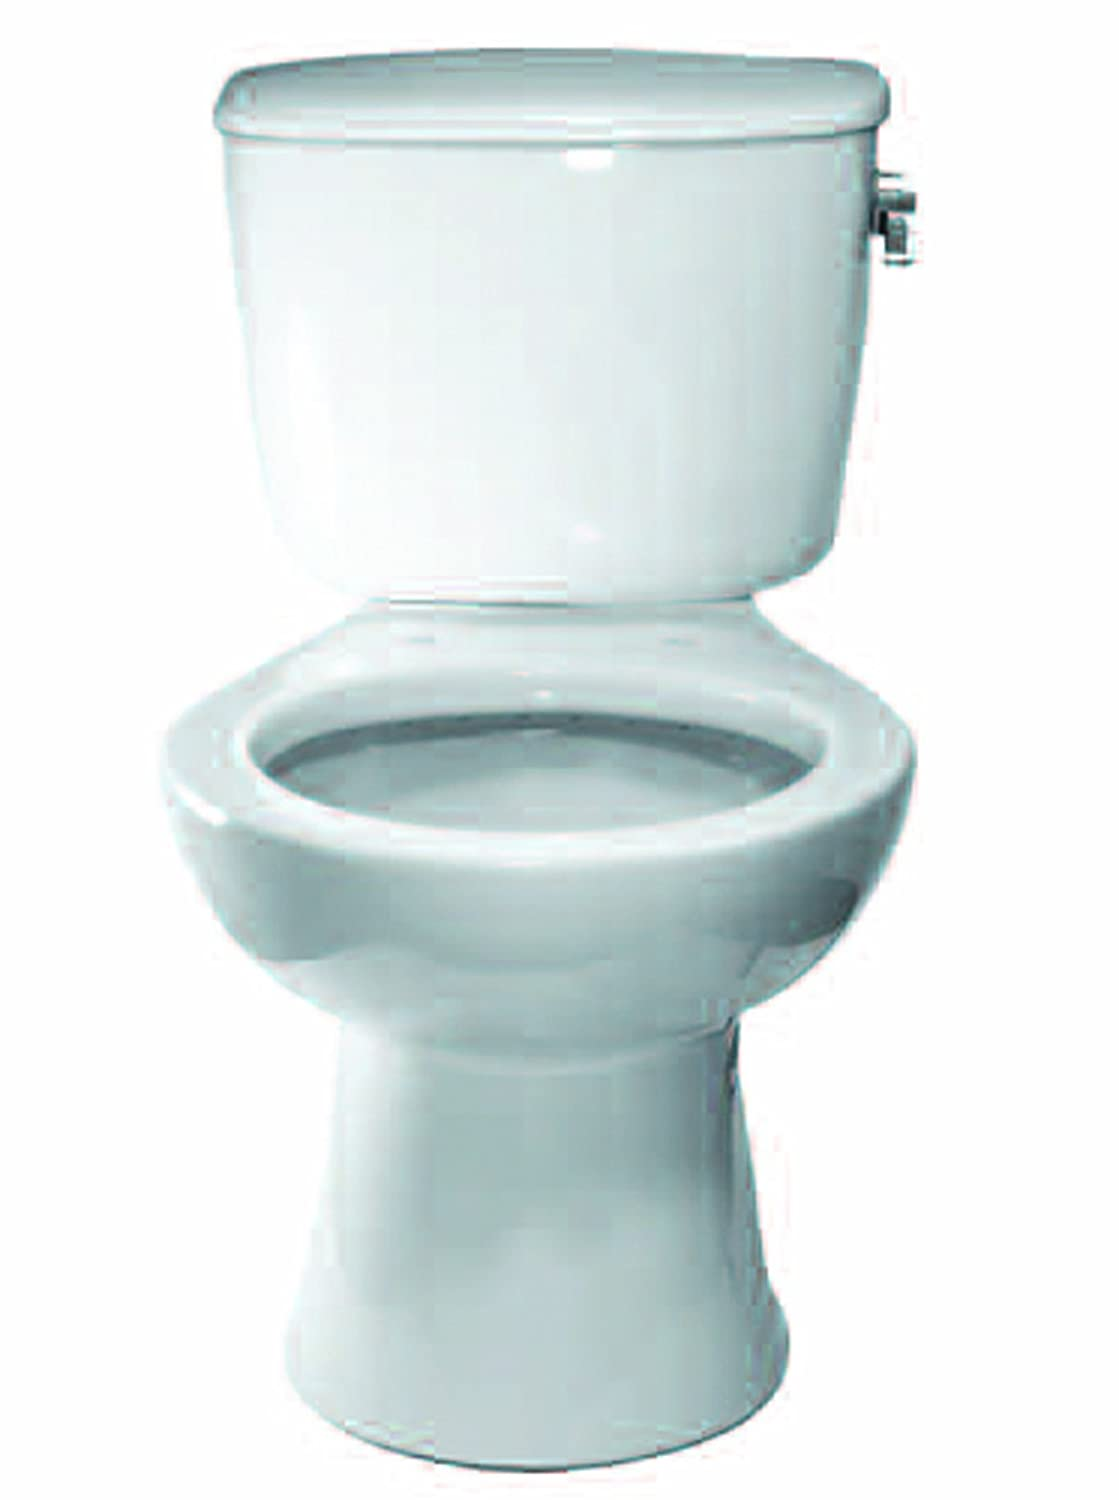 Sloan Valve ST-9023-A Commercial Elongated Toilet Bowl, White 70%OFF